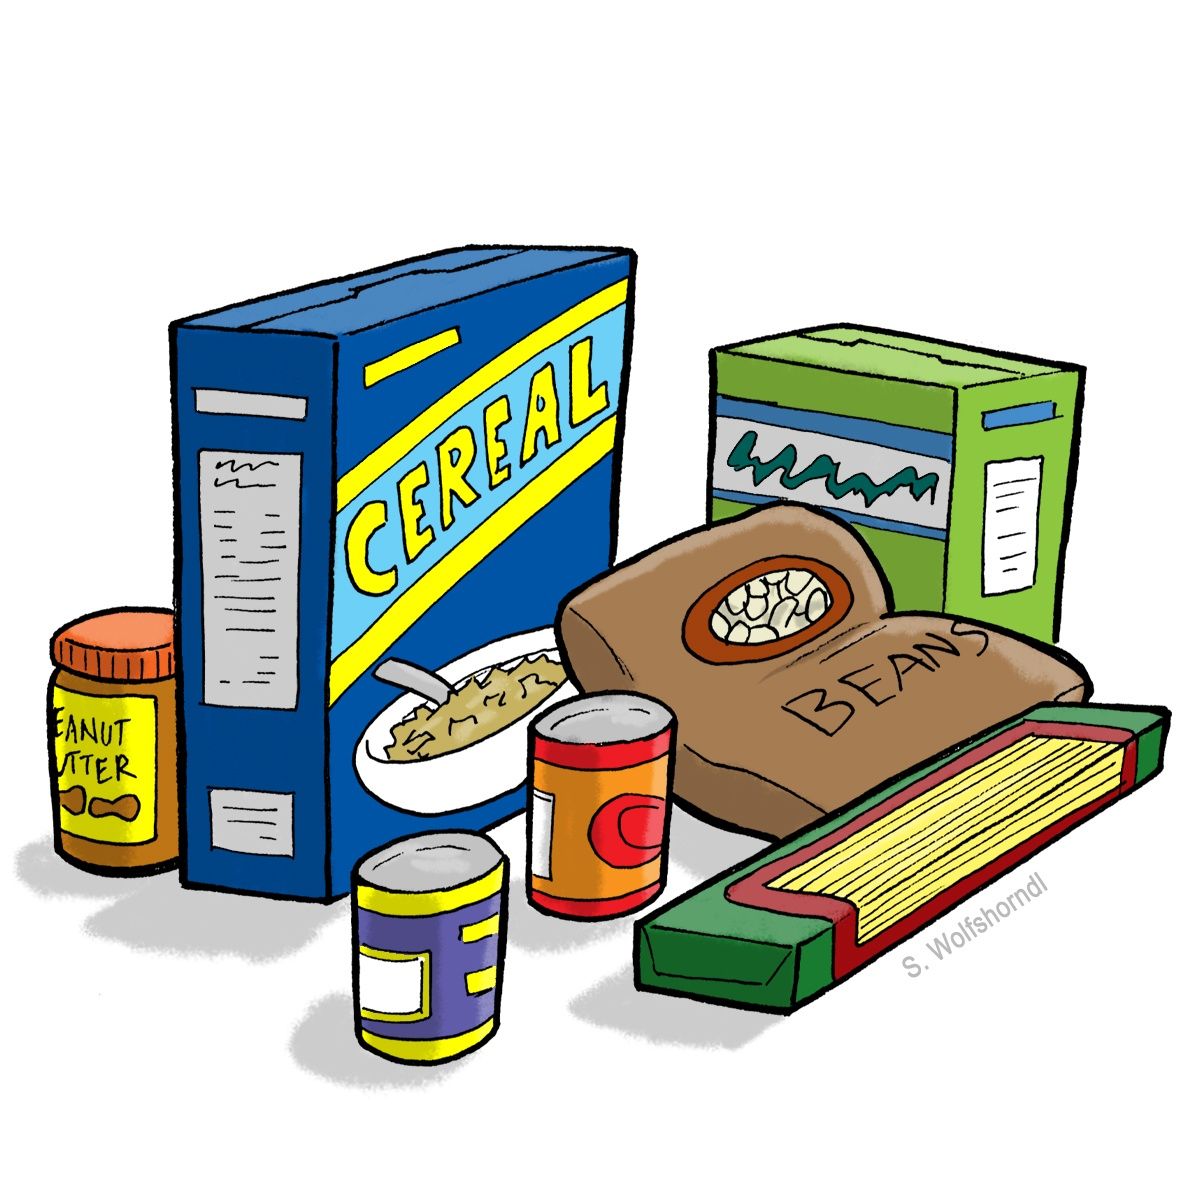 pantry clipart-pantry clipart-4